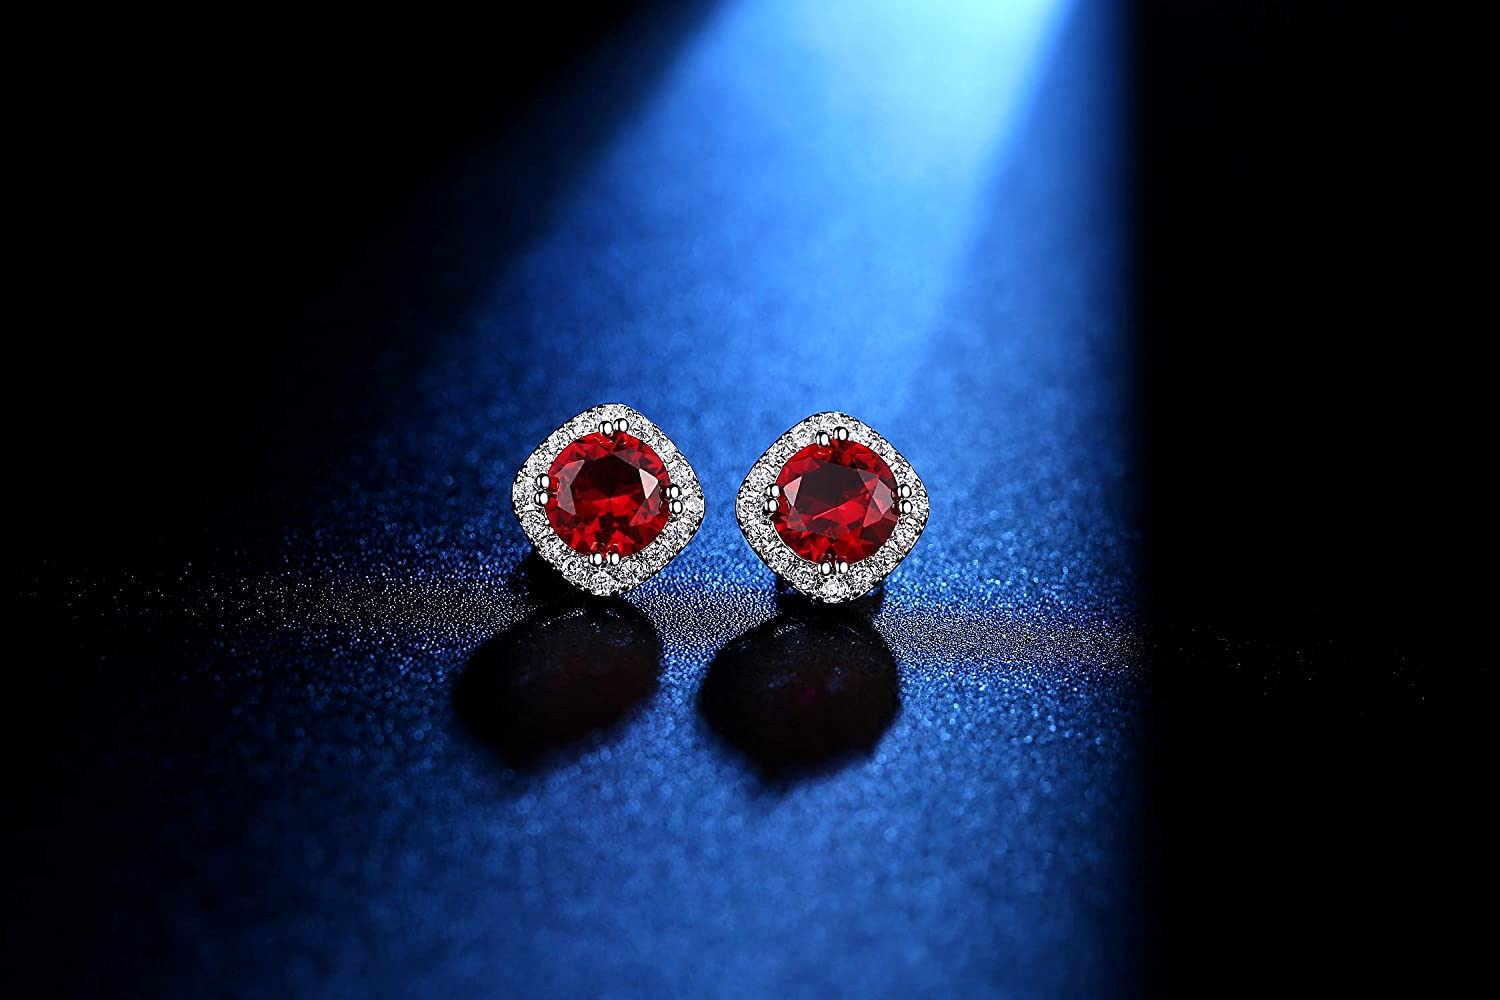 5045787cc Stud Earrings White Gold Plated with Red Cubic Zirconia For Engagement  Wedding Bridal Women & Girl Jewelry Fashionable Gift Idea For Her:  Amazon.co.uk: ...